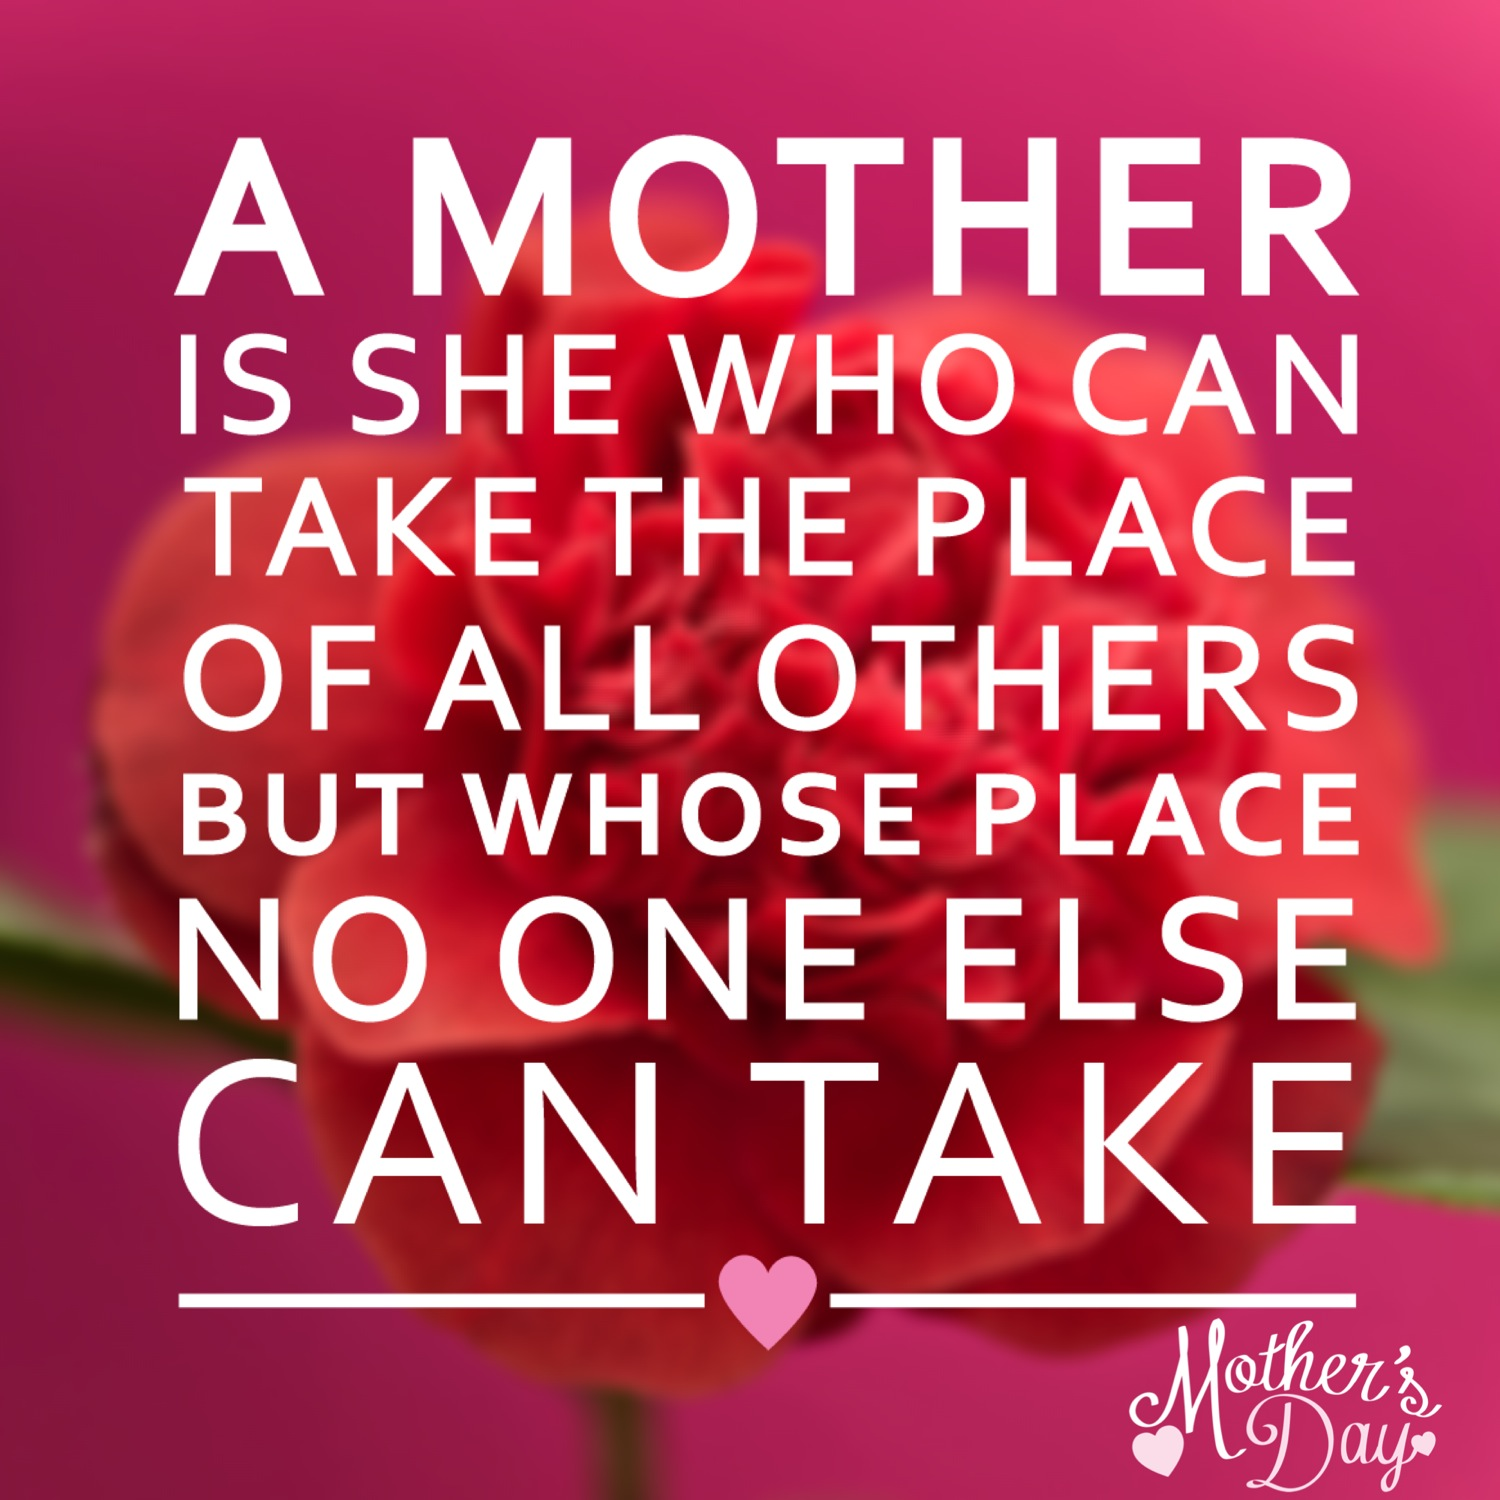 Piquant Sayings Happy Mors Day Quotes Mors Day Archives Tech Life Magazine Ny Mors Day Quotes Reddit Ny Mors Day Quotes inspiration Funny Mothers Day Quotes